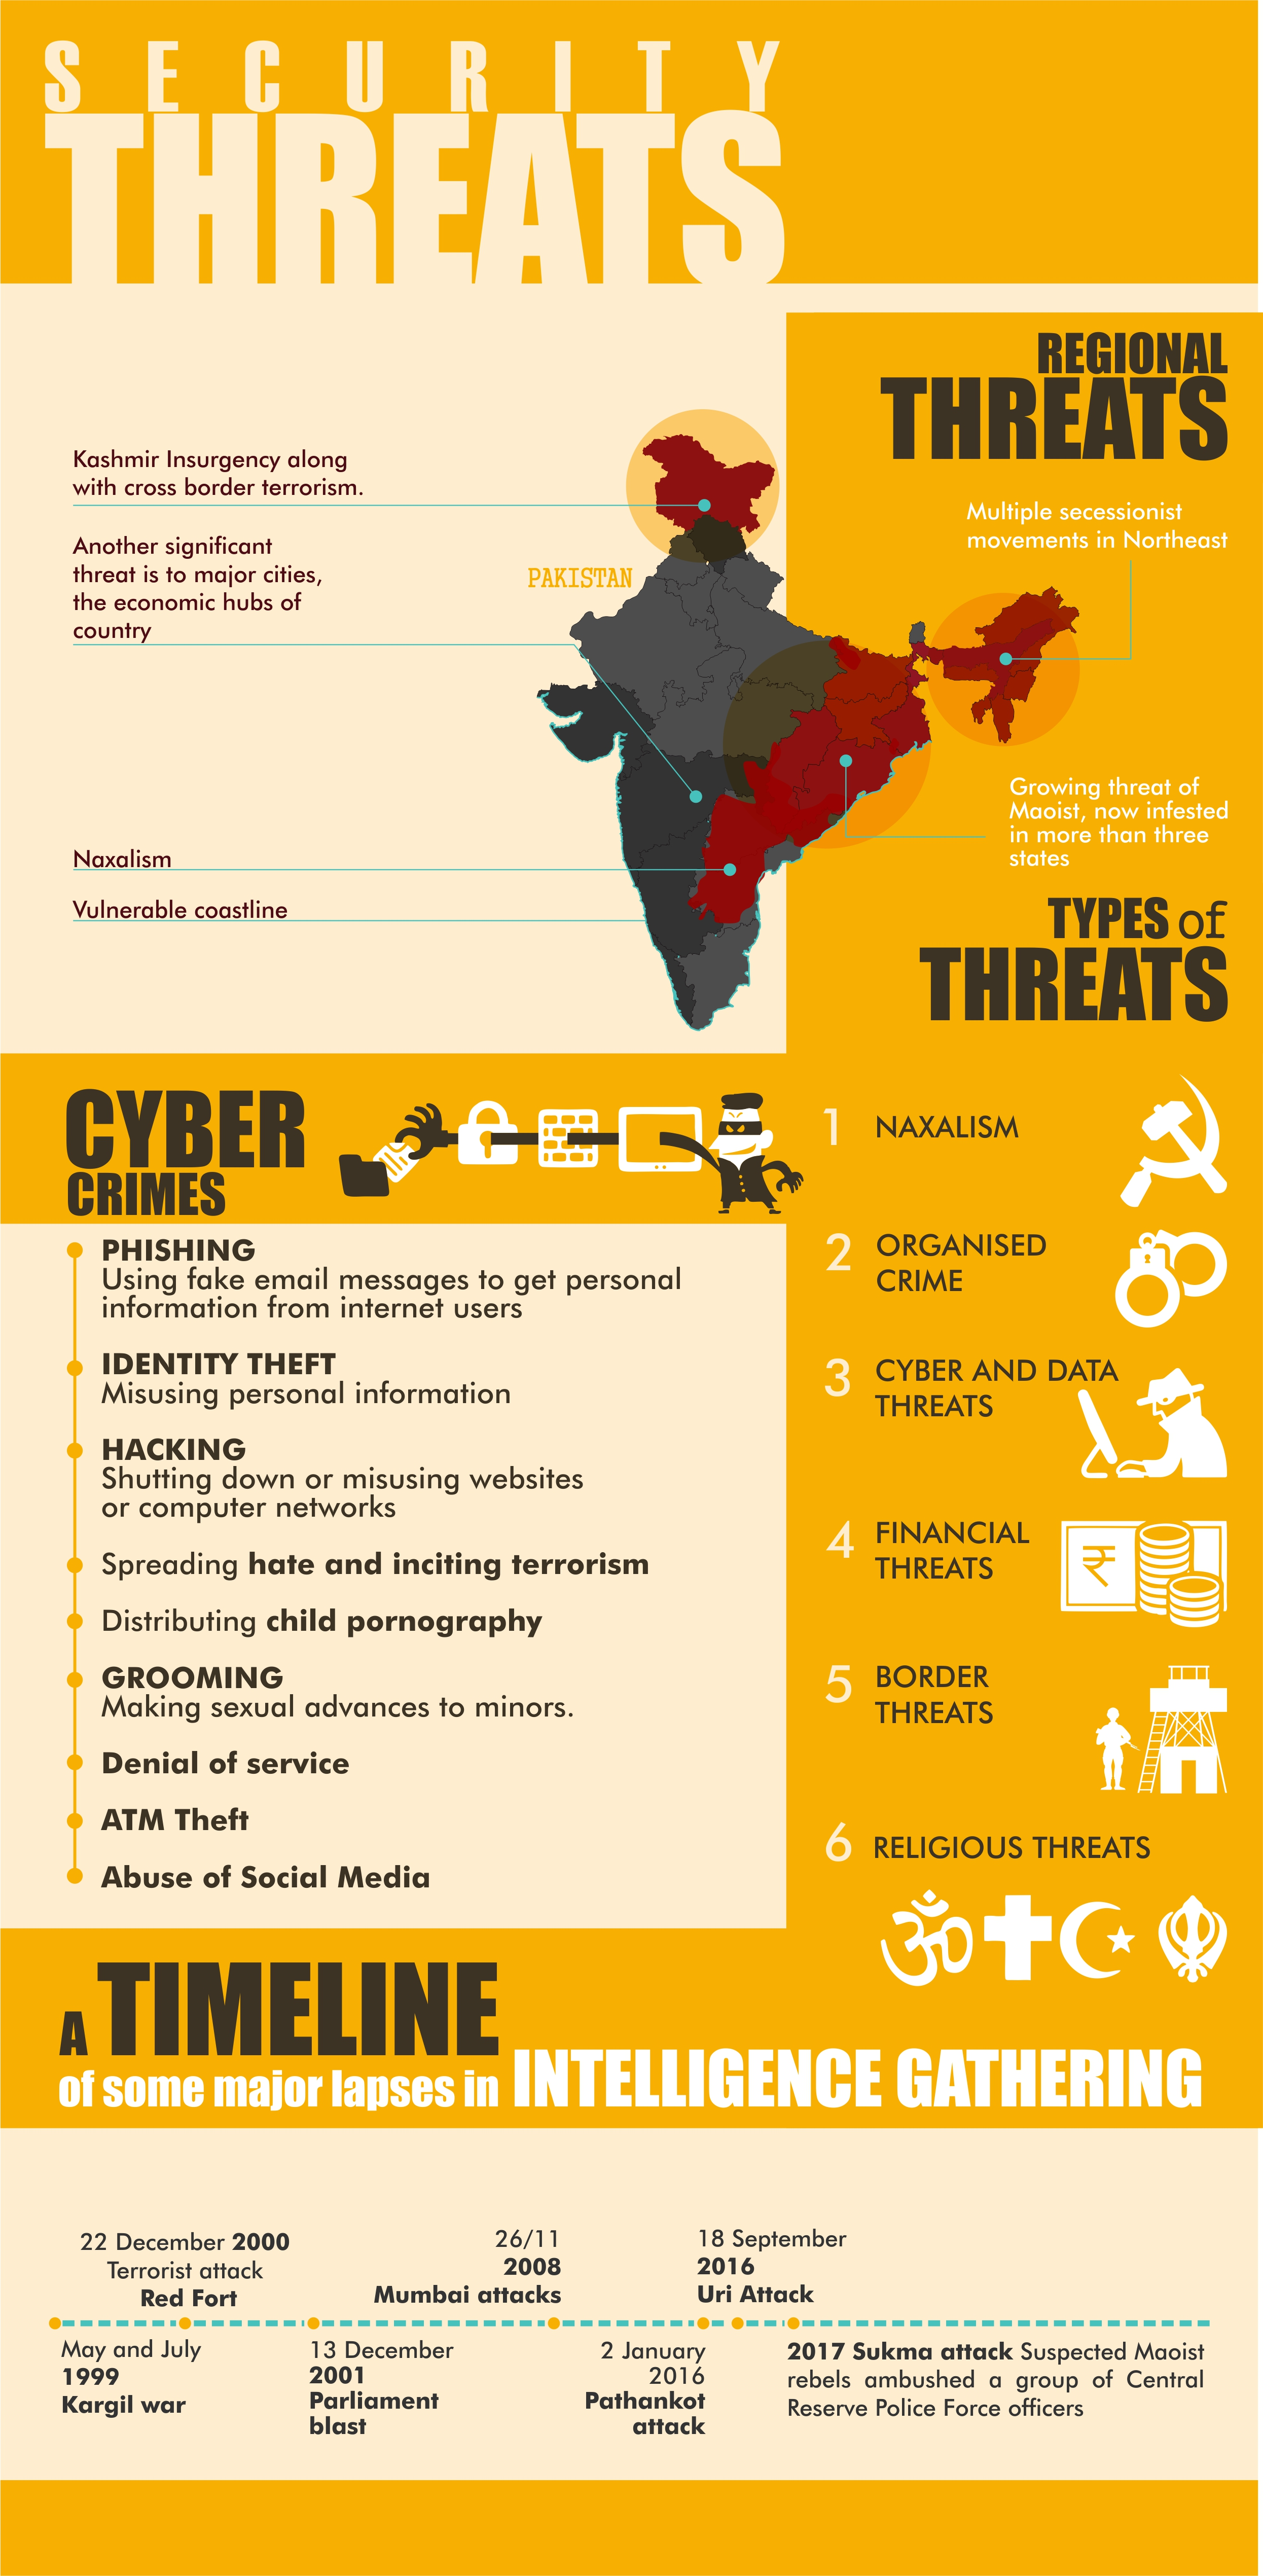 Securit Threats of India Infographic